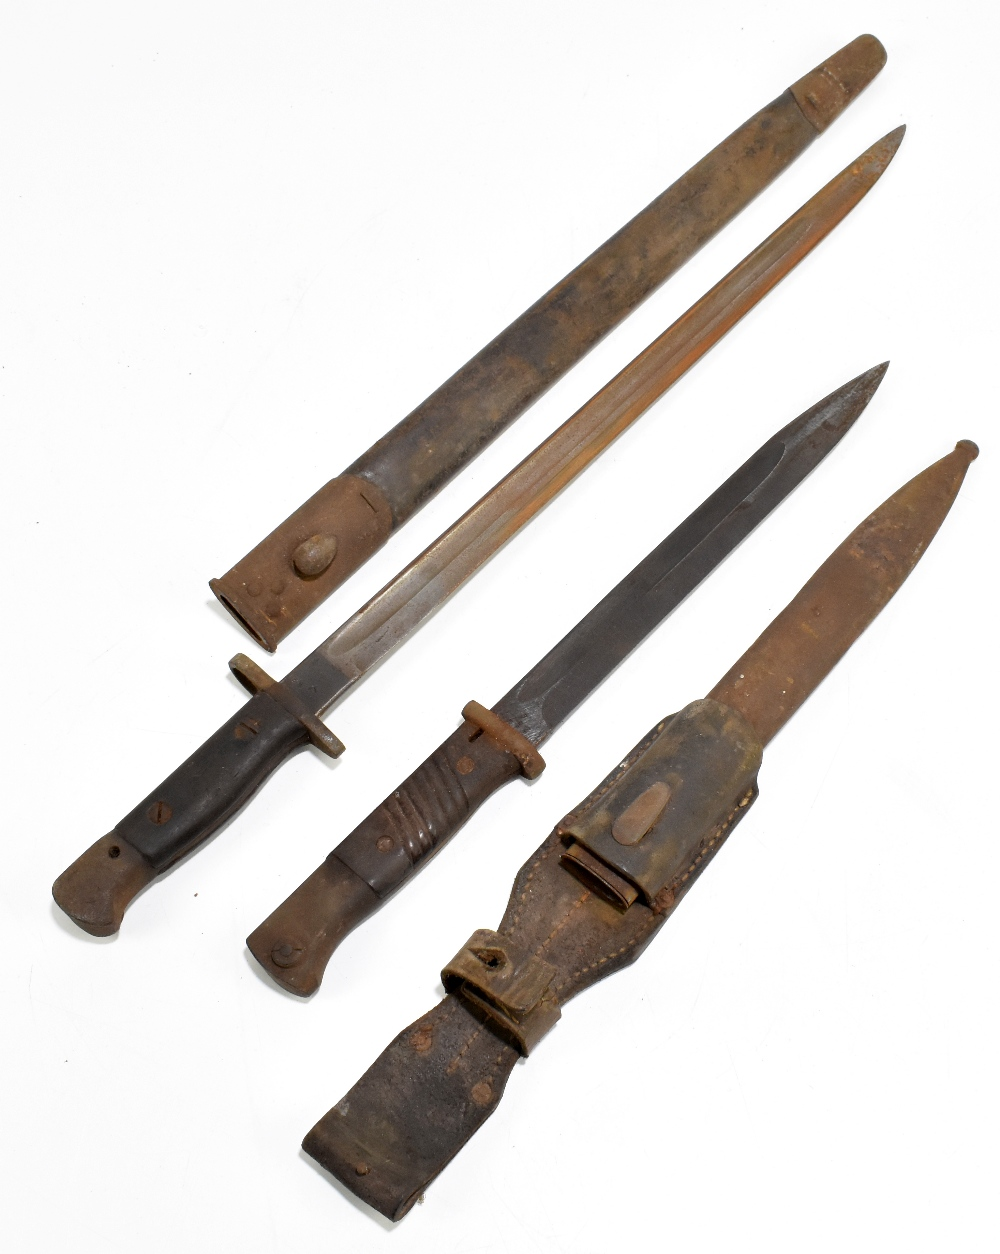 Two bayonets including a 1907 Pattern British example, each complete with scabbard, length of